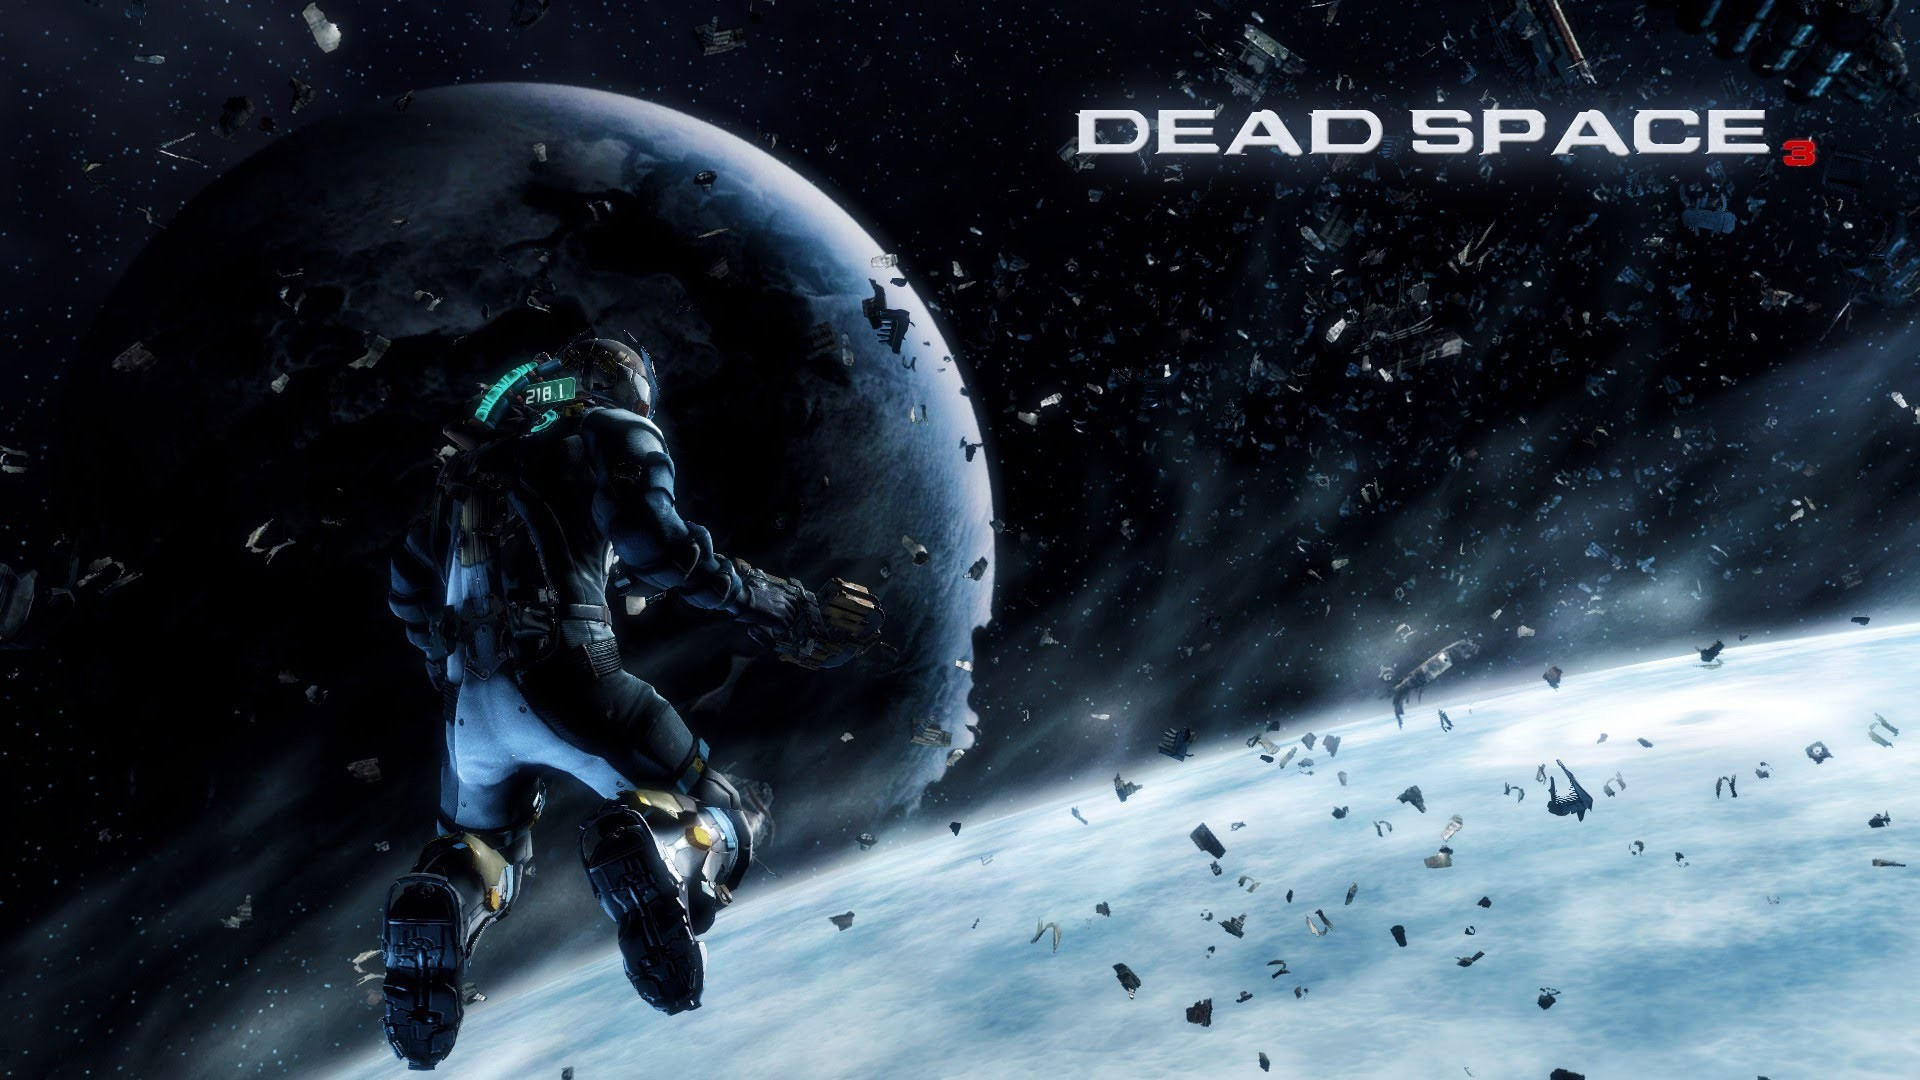 Res: 1920x1080, Dead Space 3 HD Wallpapers 14 - 1920 X 1080